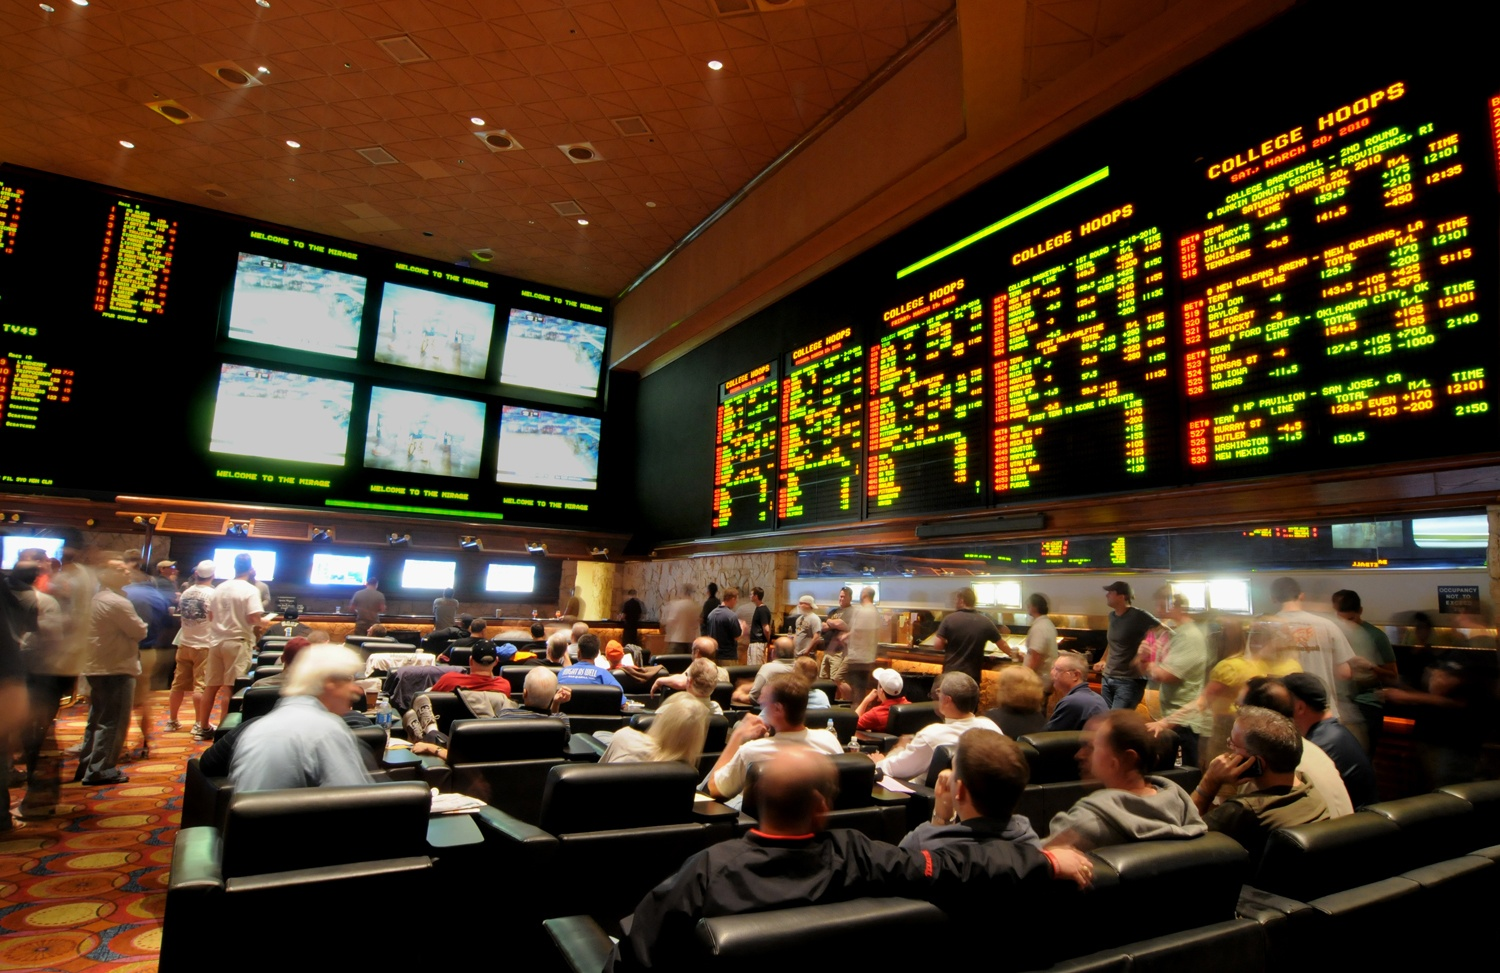 Mirage Race and Sports Book in Las Vegas